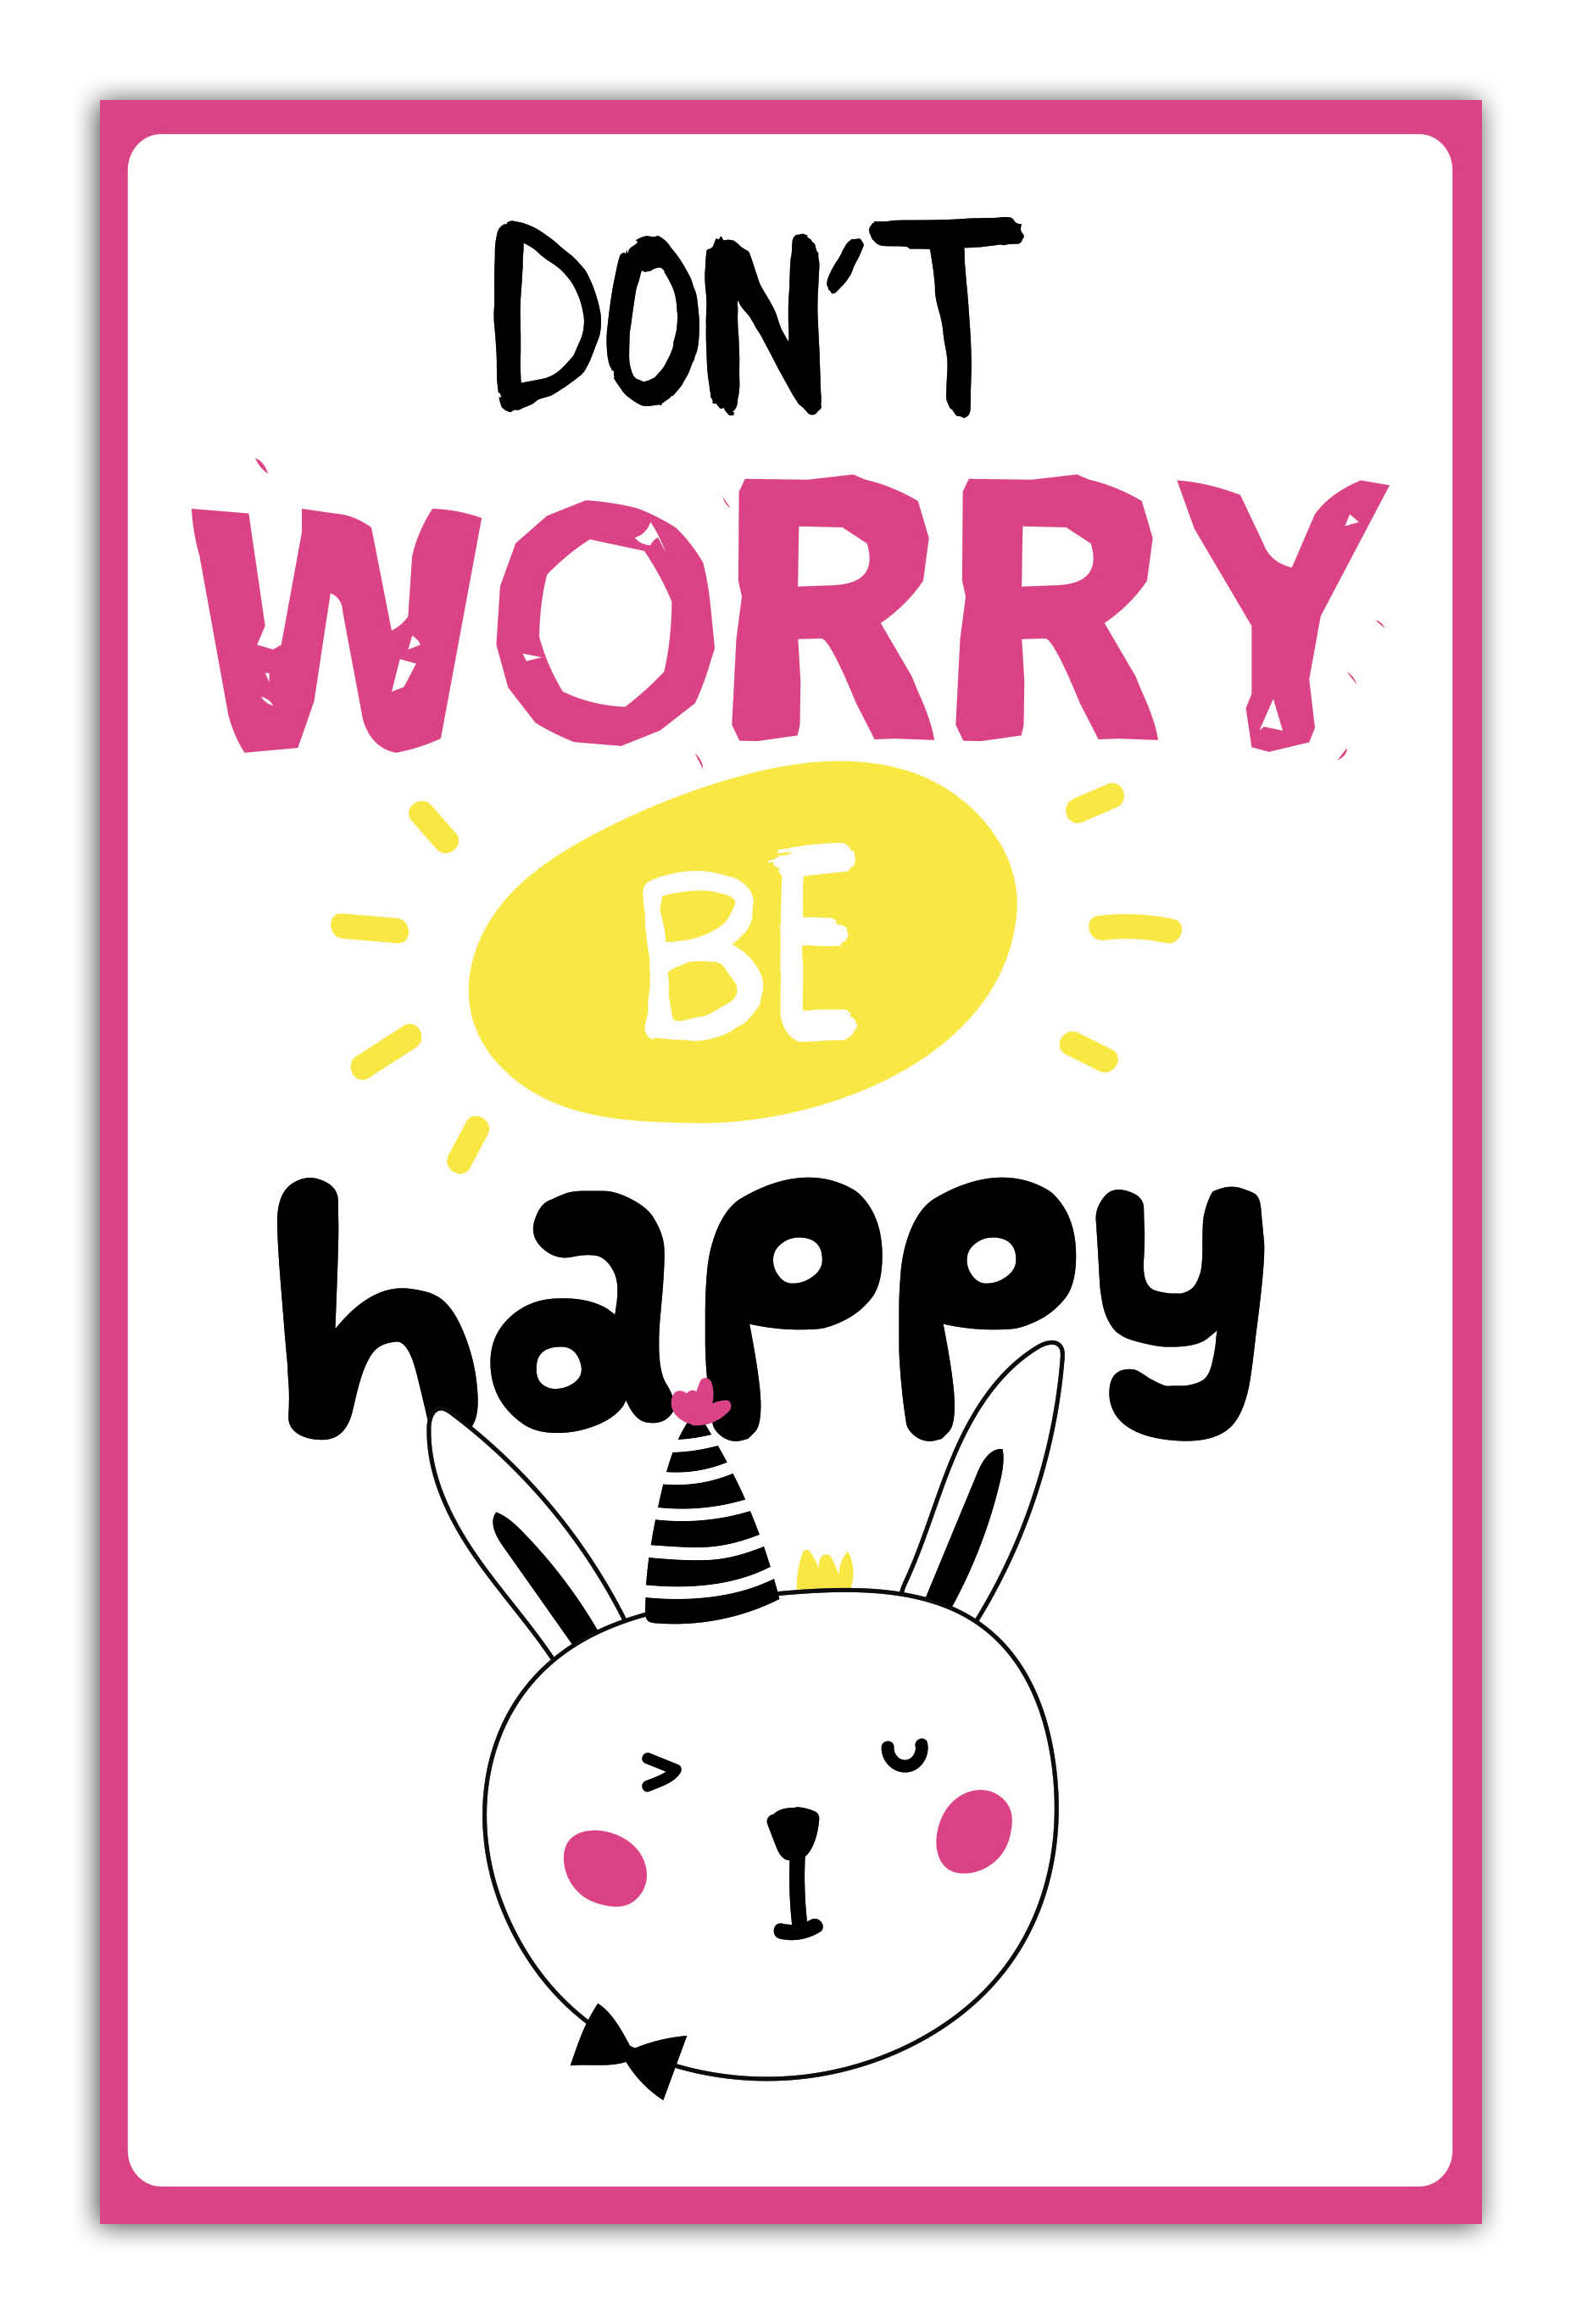 Don't worry be happy (А5)